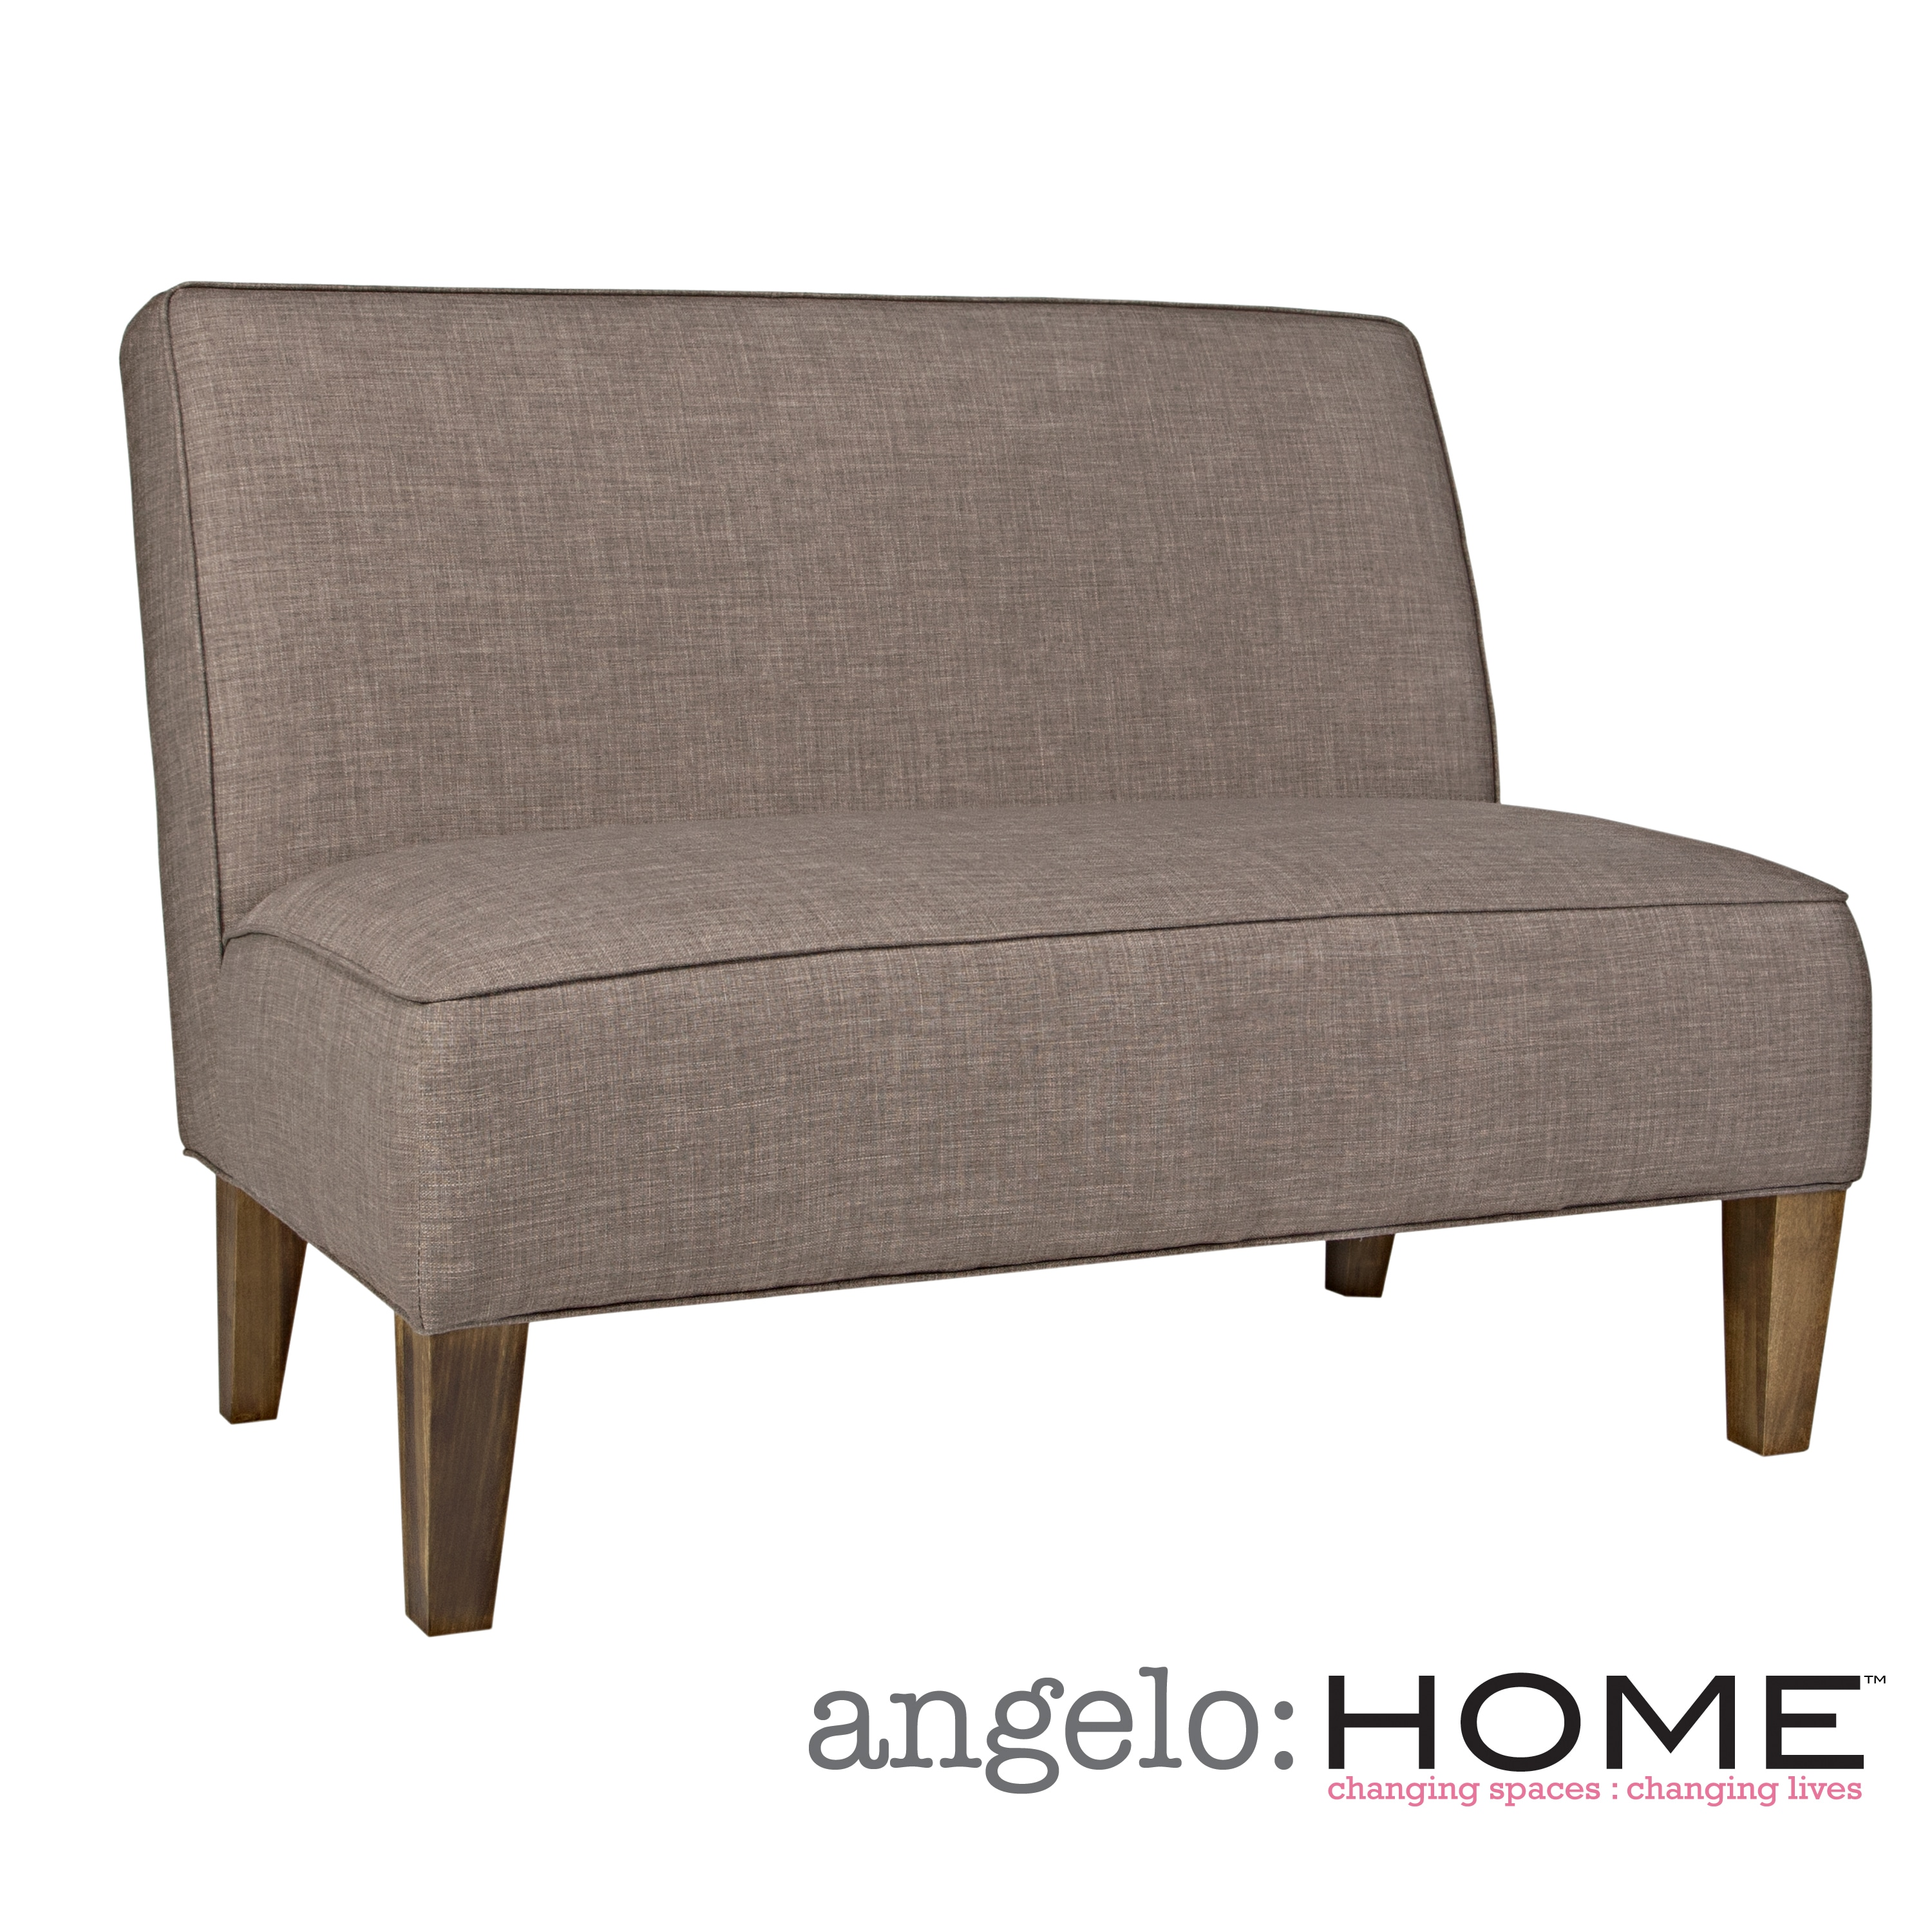 angelo:HOME Dover Smoke Gray Sand Armless Settee